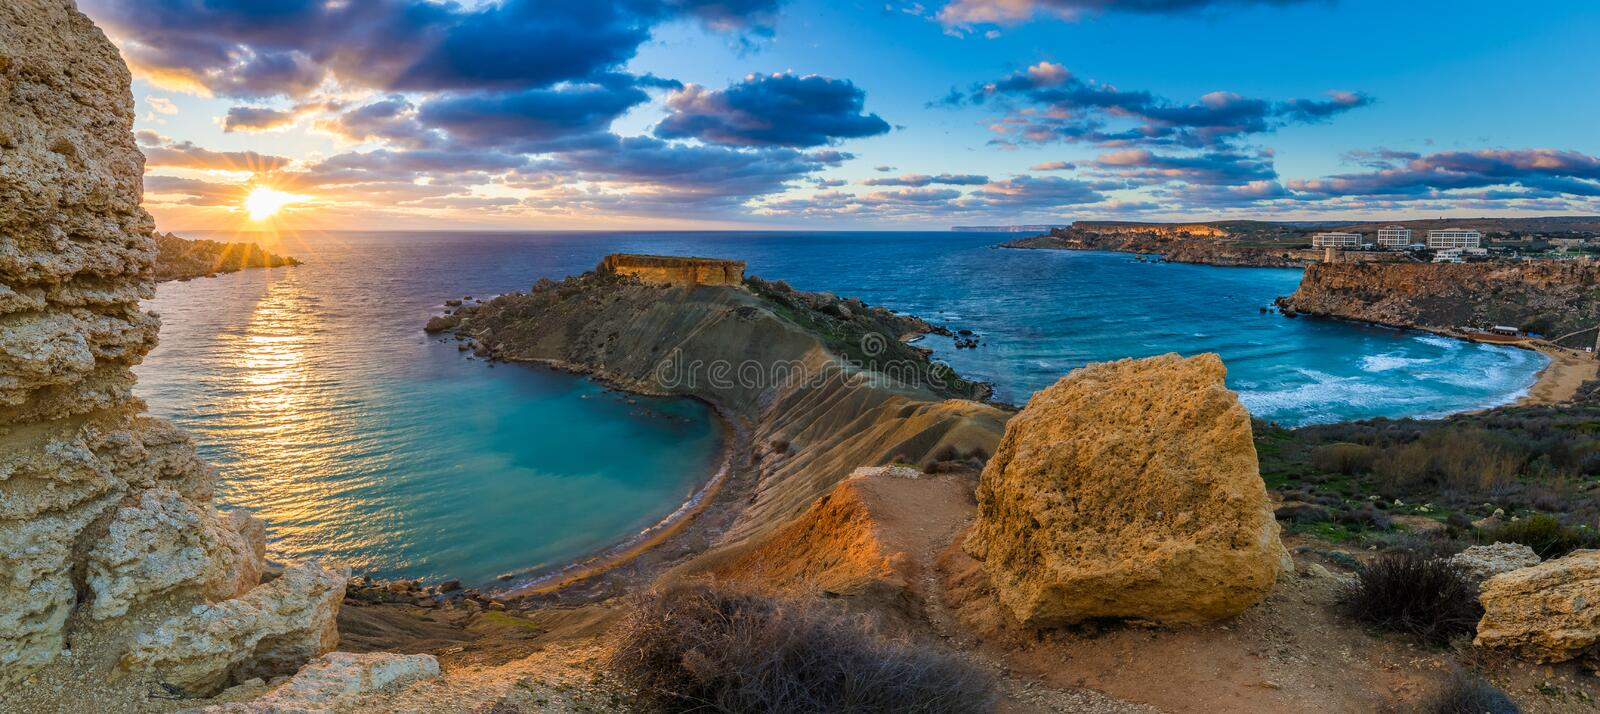 Mgarr, Malta - Panorama of Gnejna bay and Golden Bay, the two most beautiful beaches in Malta royalty free stock photo